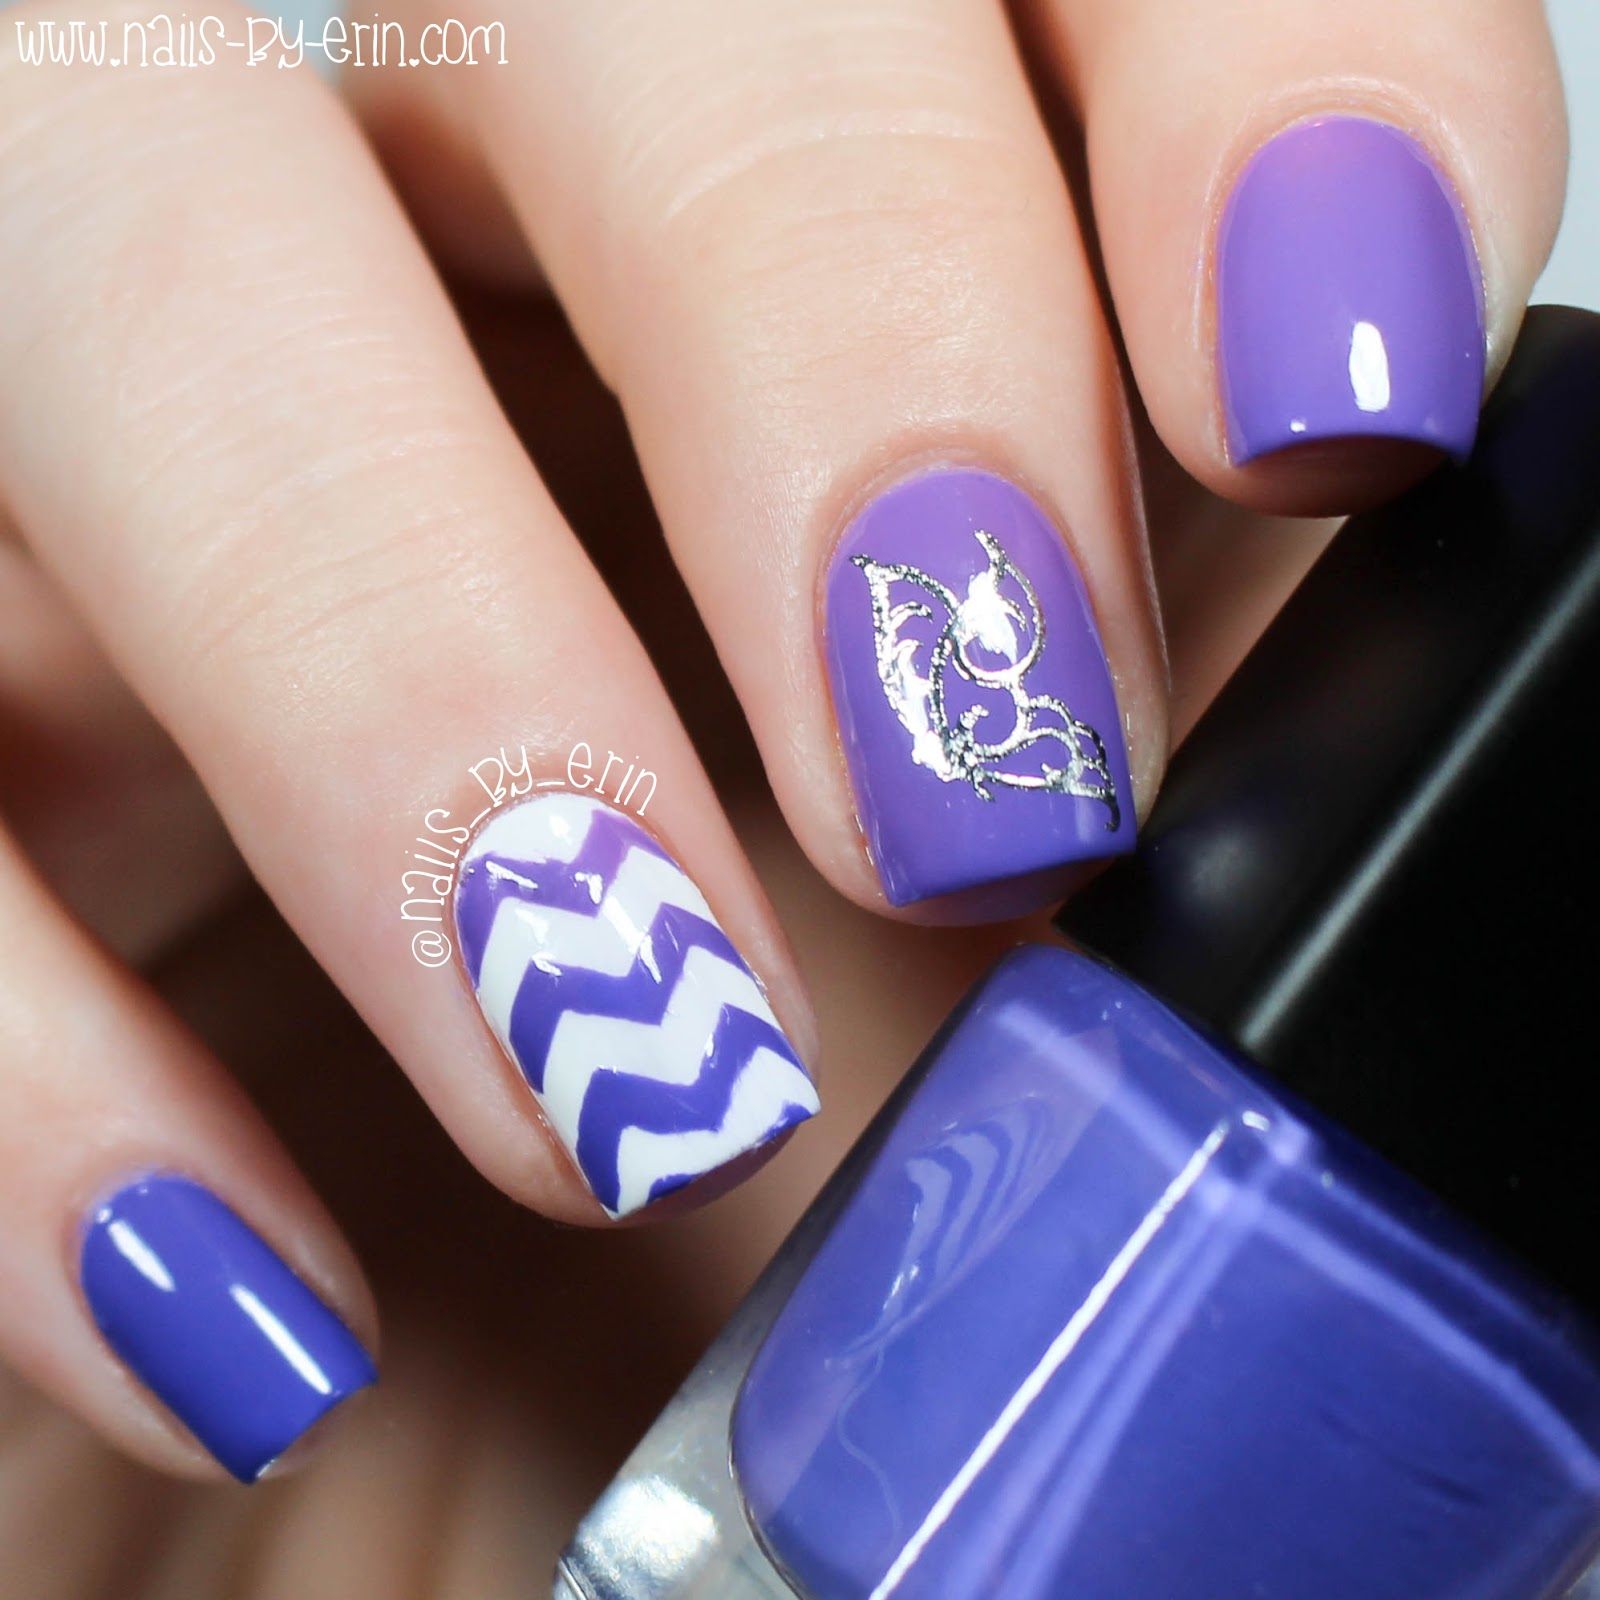 Nail Cake Born Pretty Store Review: NailsByErin: Thermal Butterfly Decal Nails